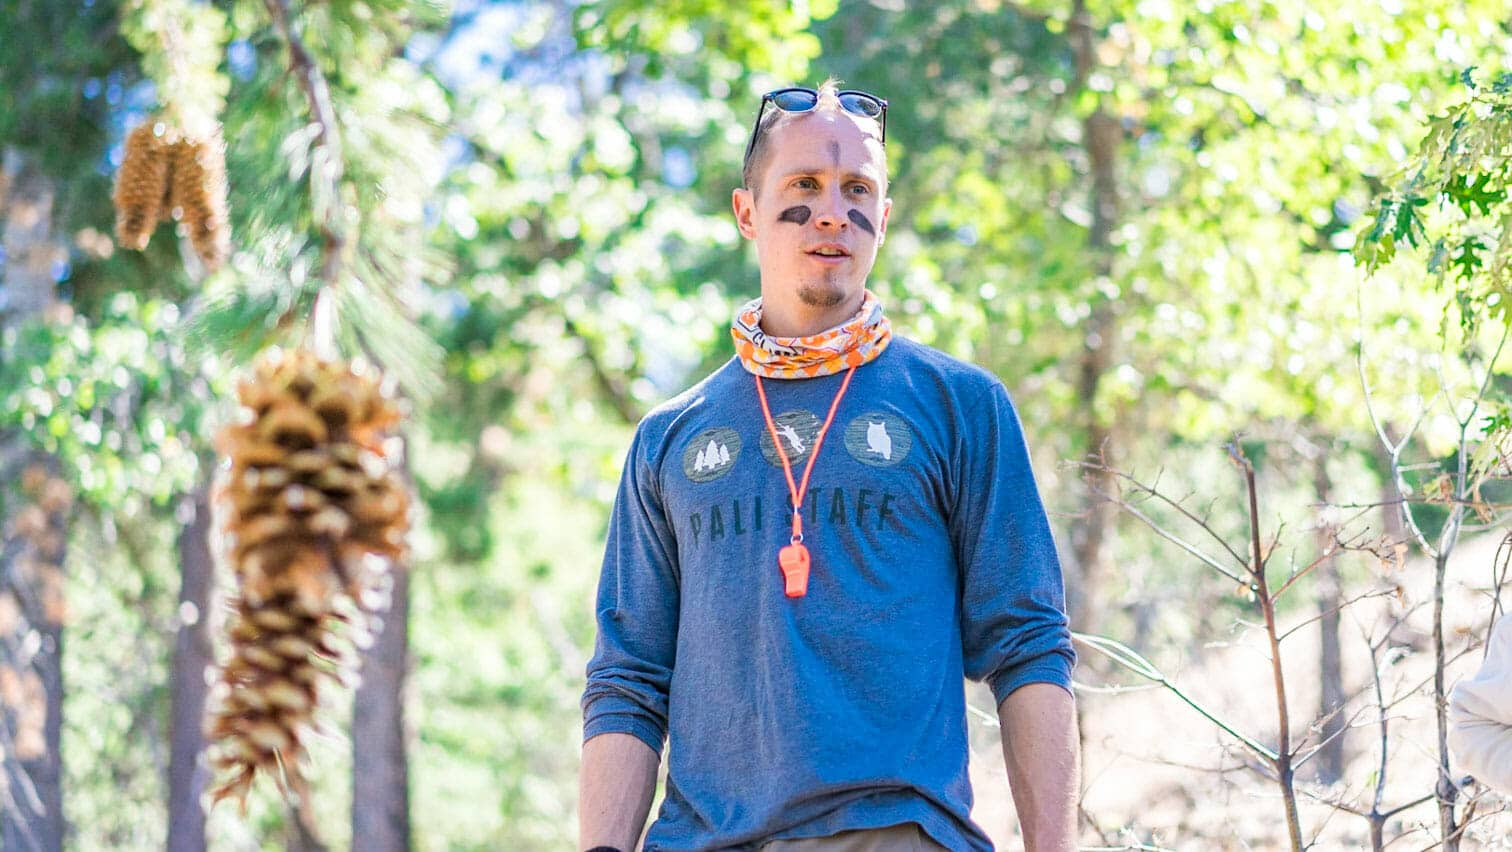 Pali instructor stands near hanging pinecones in woods